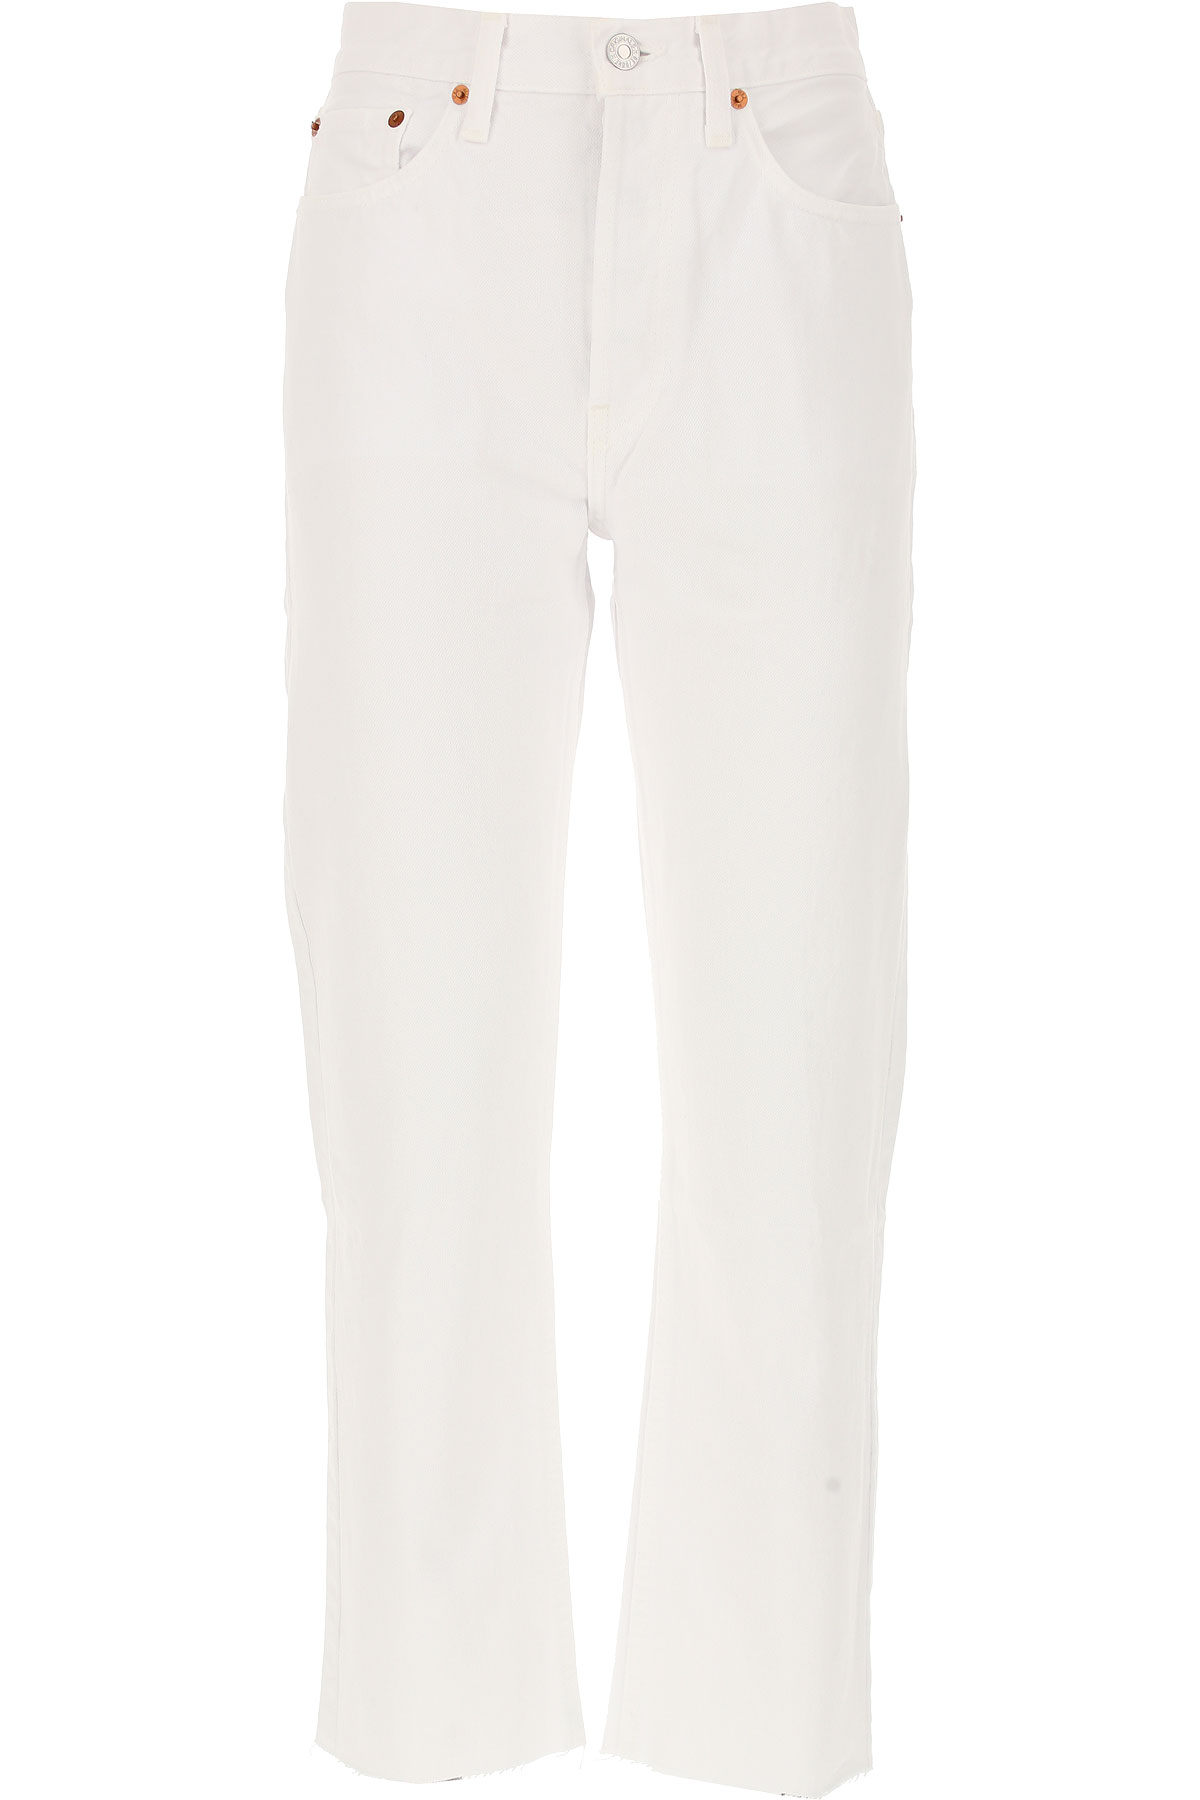 Image of RE/DONE Jeans, White, Cotton, 2017, 25 26 27 28 29